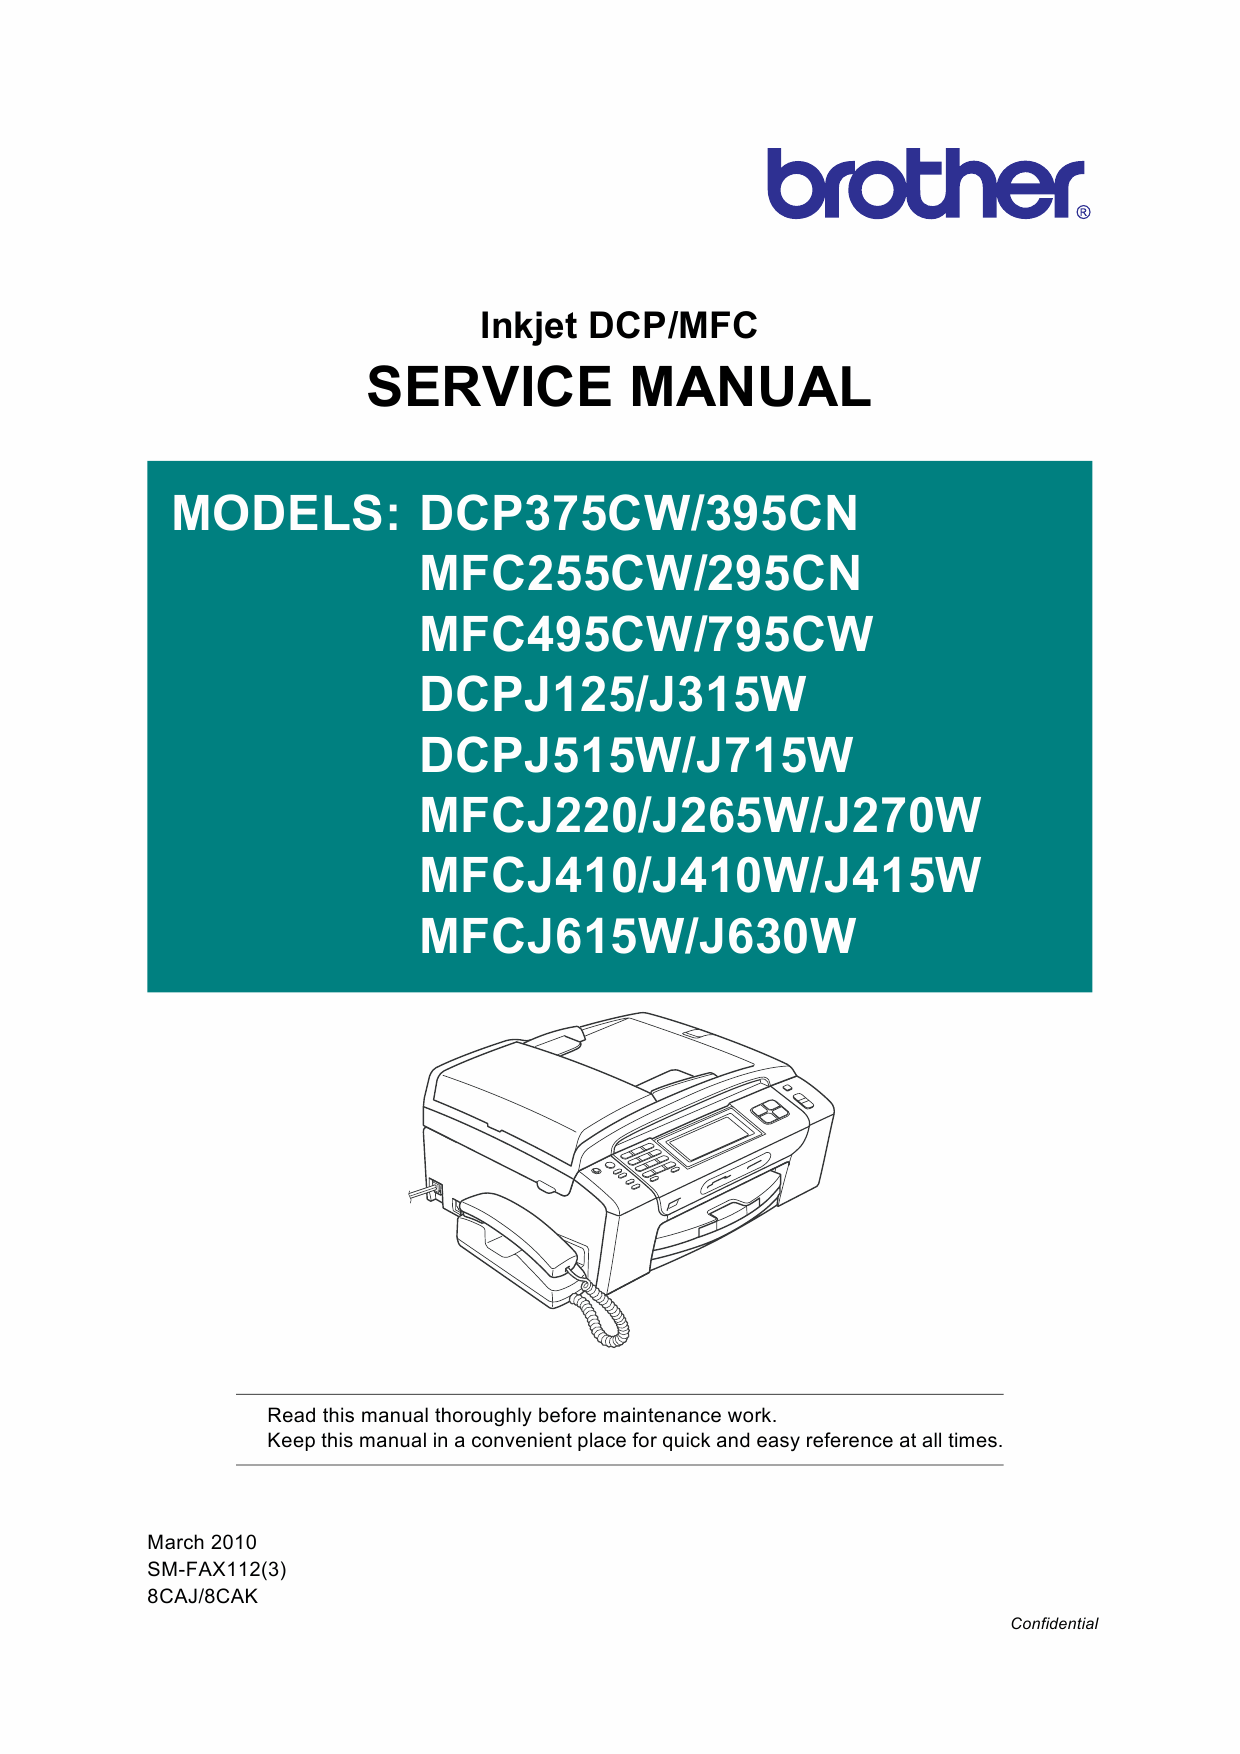 Brother Inkjet-MFC J220 J265 J270 J410 J415 J615 J630 W DCPJ125 J315 J515 J715 W Service Manual-1